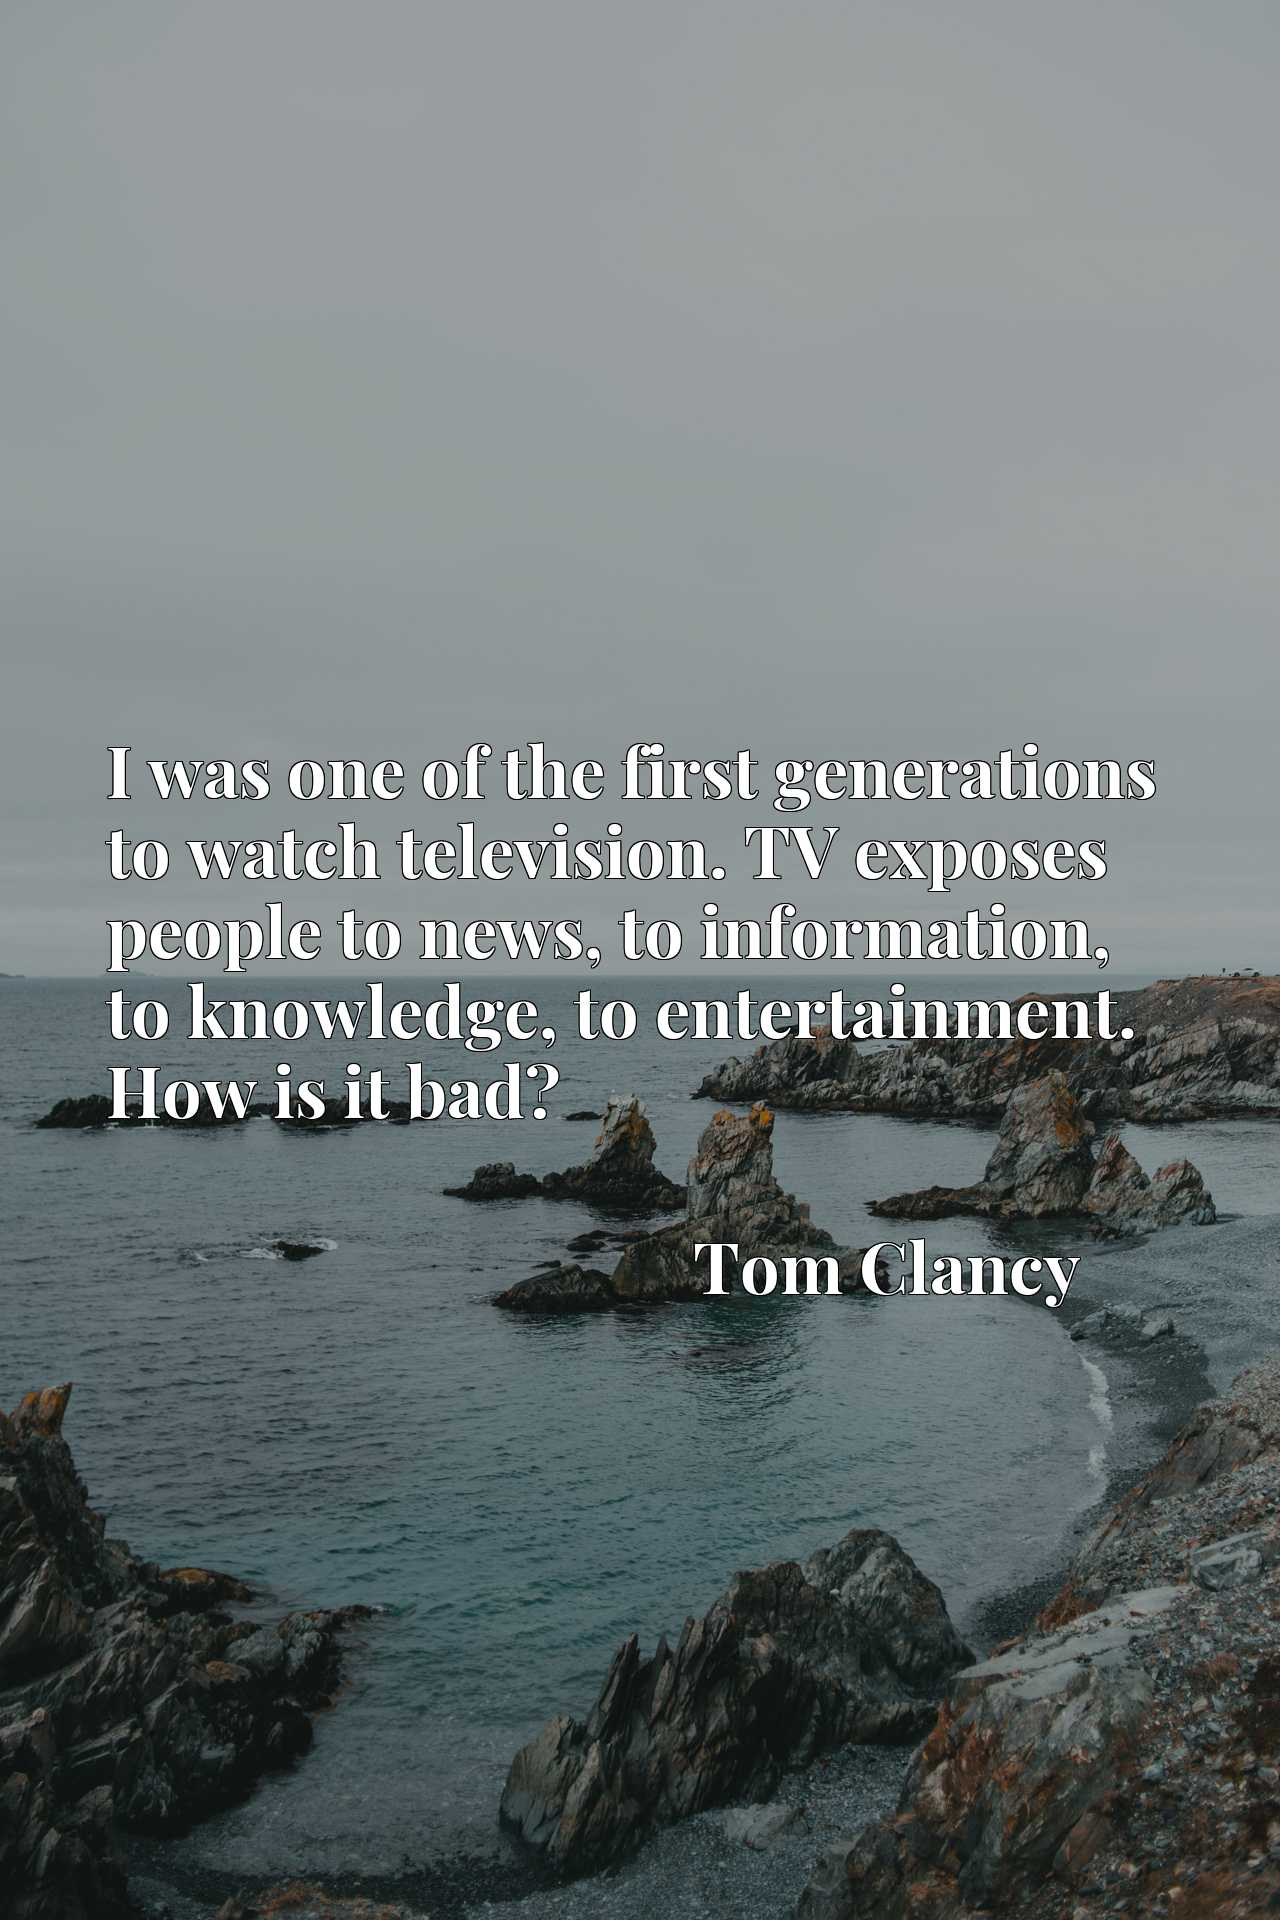 Quote Picture :I was one of the first generations to watch television. TV exposes people to news, to information, to knowledge, to entertainment. How is it bad?